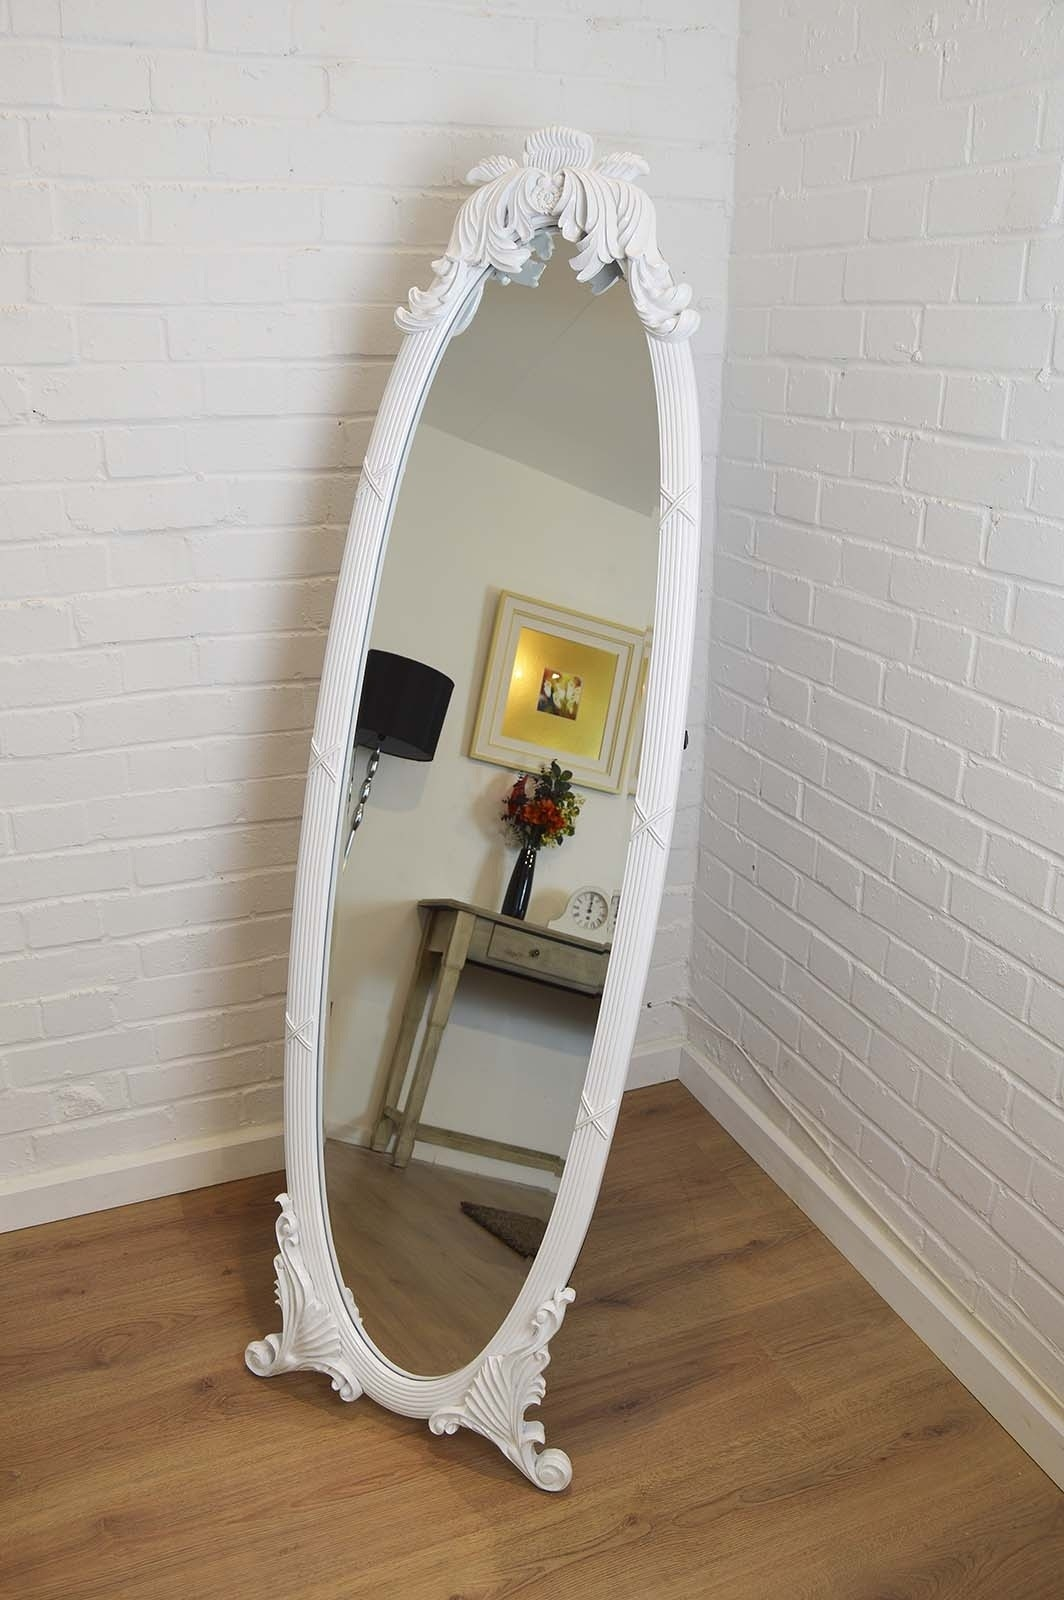 Stand Alone Mirror Infinity Modern Bedroom Mirror S L Infinity With Regard To Free Standing Shabby Chic Mirror (Image 15 of 15)